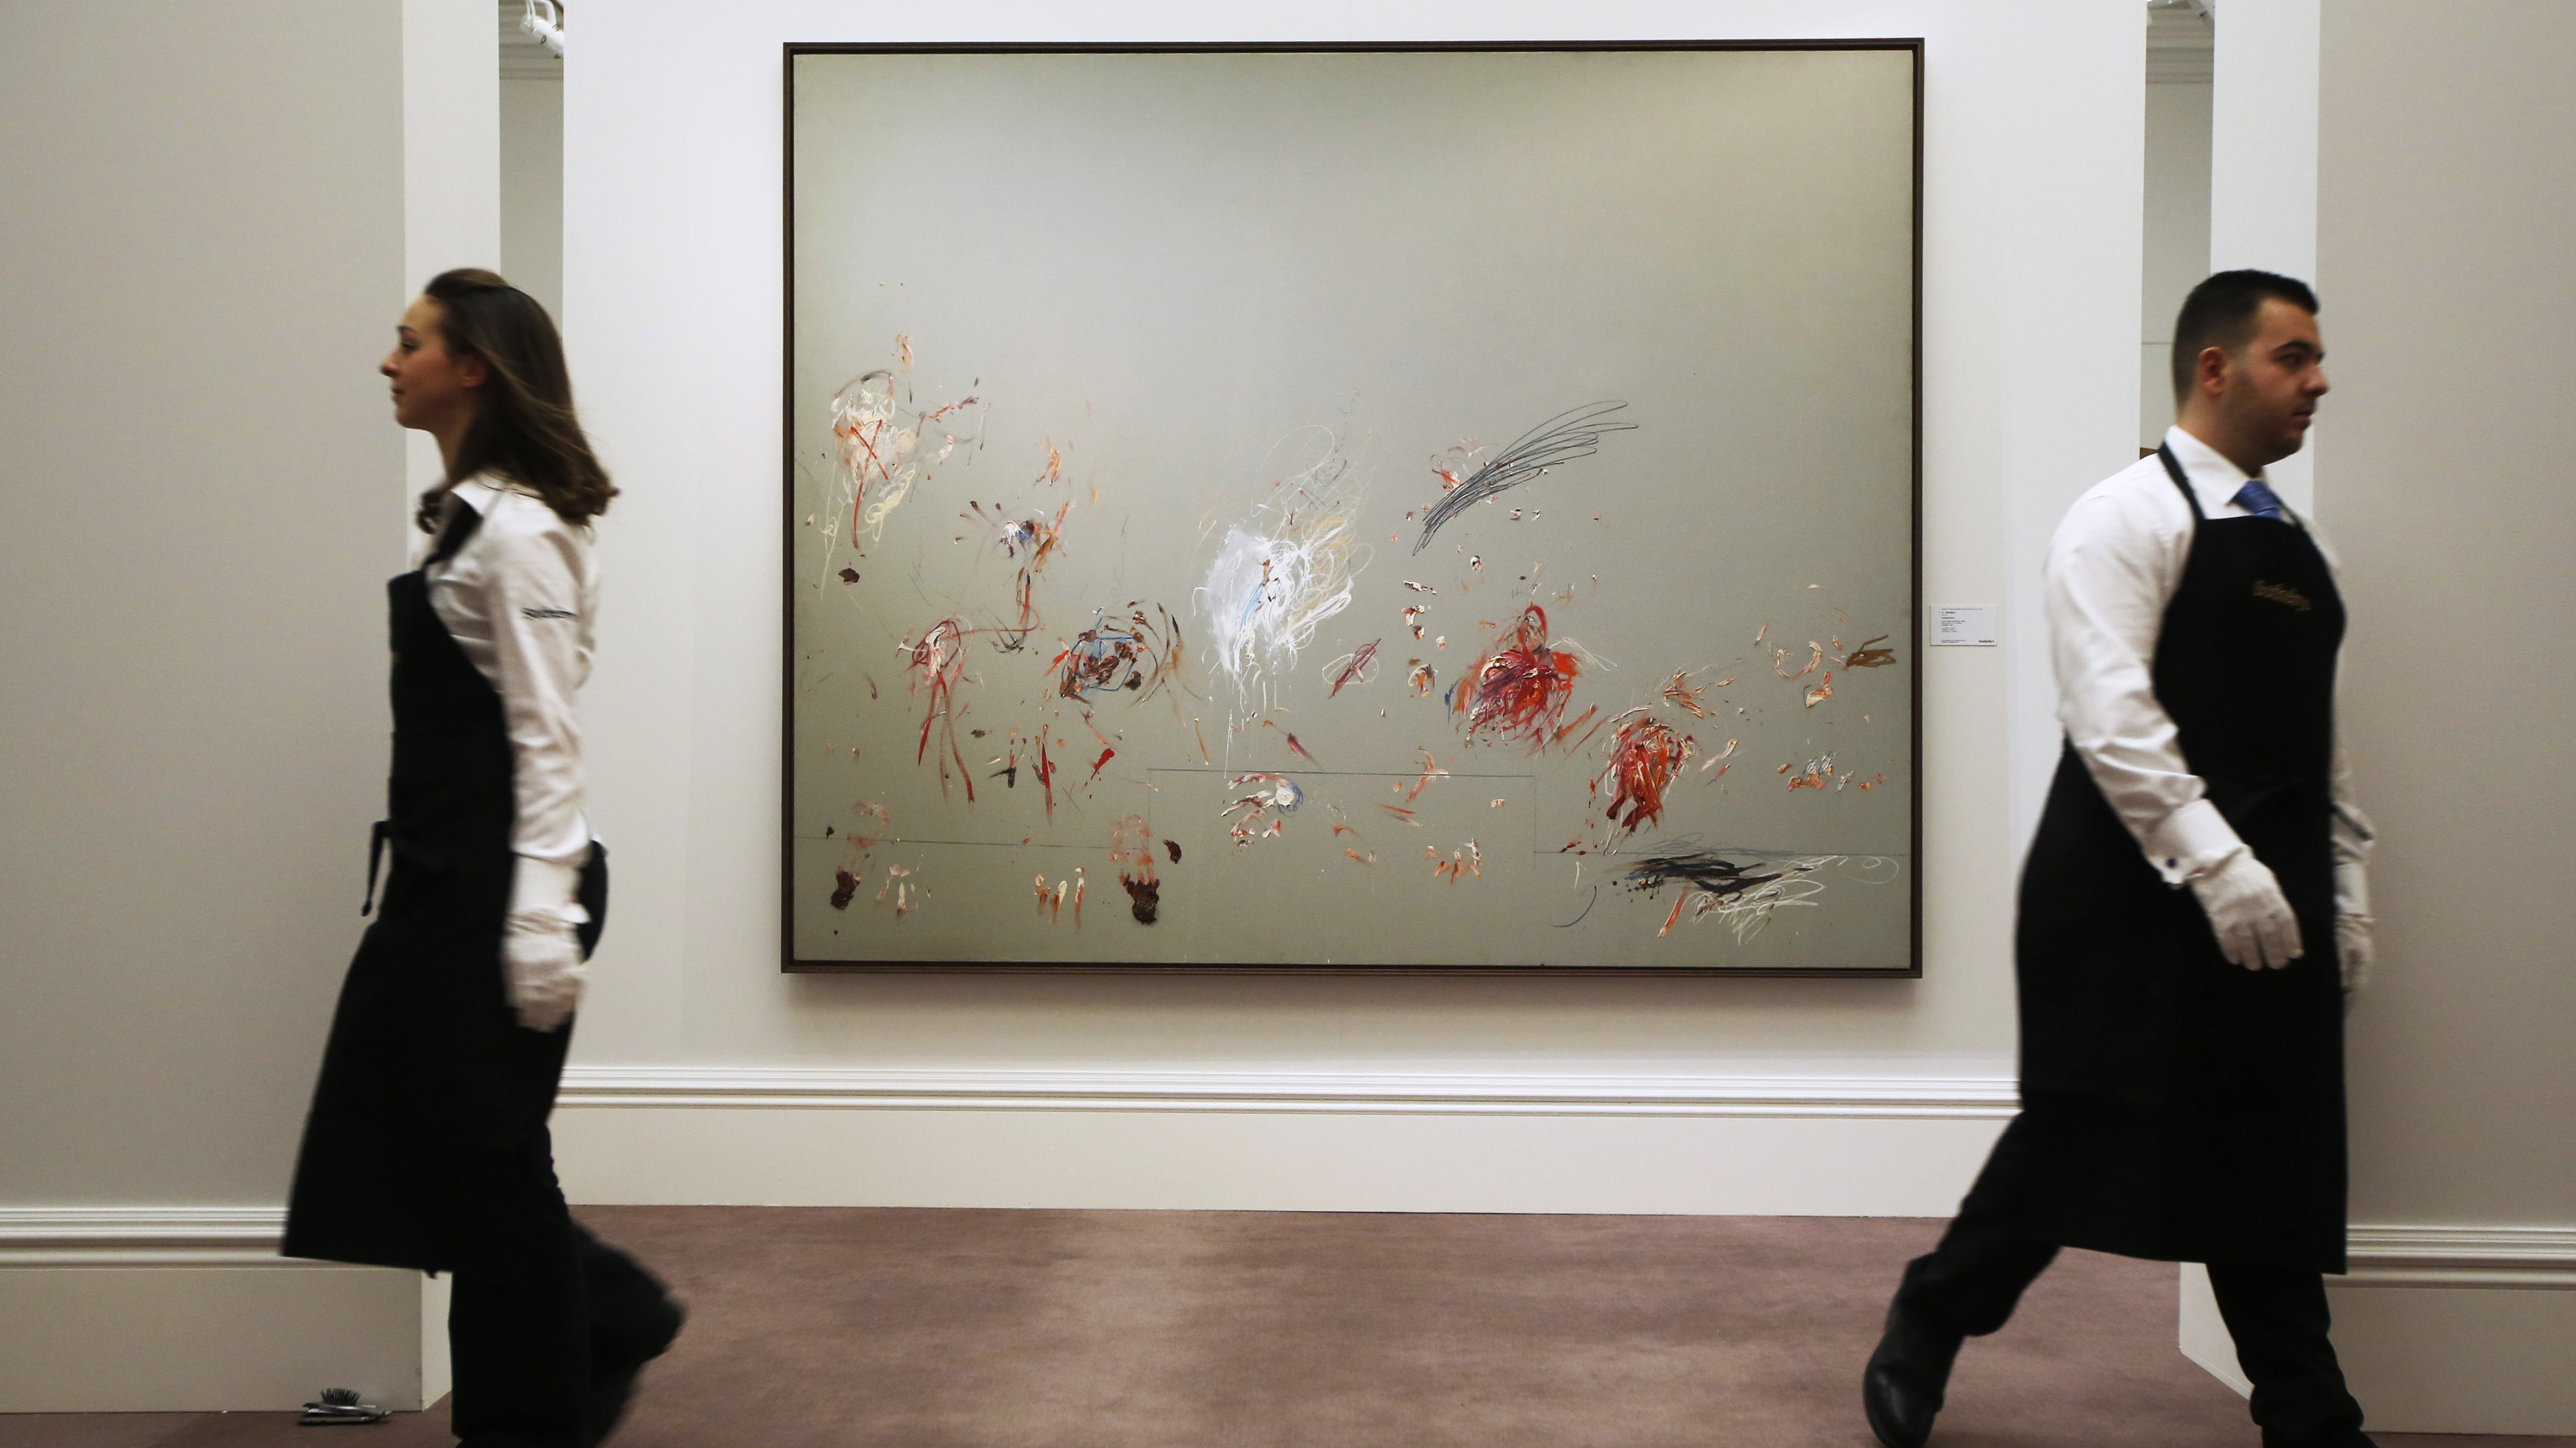 """Employees pose for a photograph with artist Cy Twombly's artwork """"Untitled (Rome)"""" at Sotheby's auction house in London."""